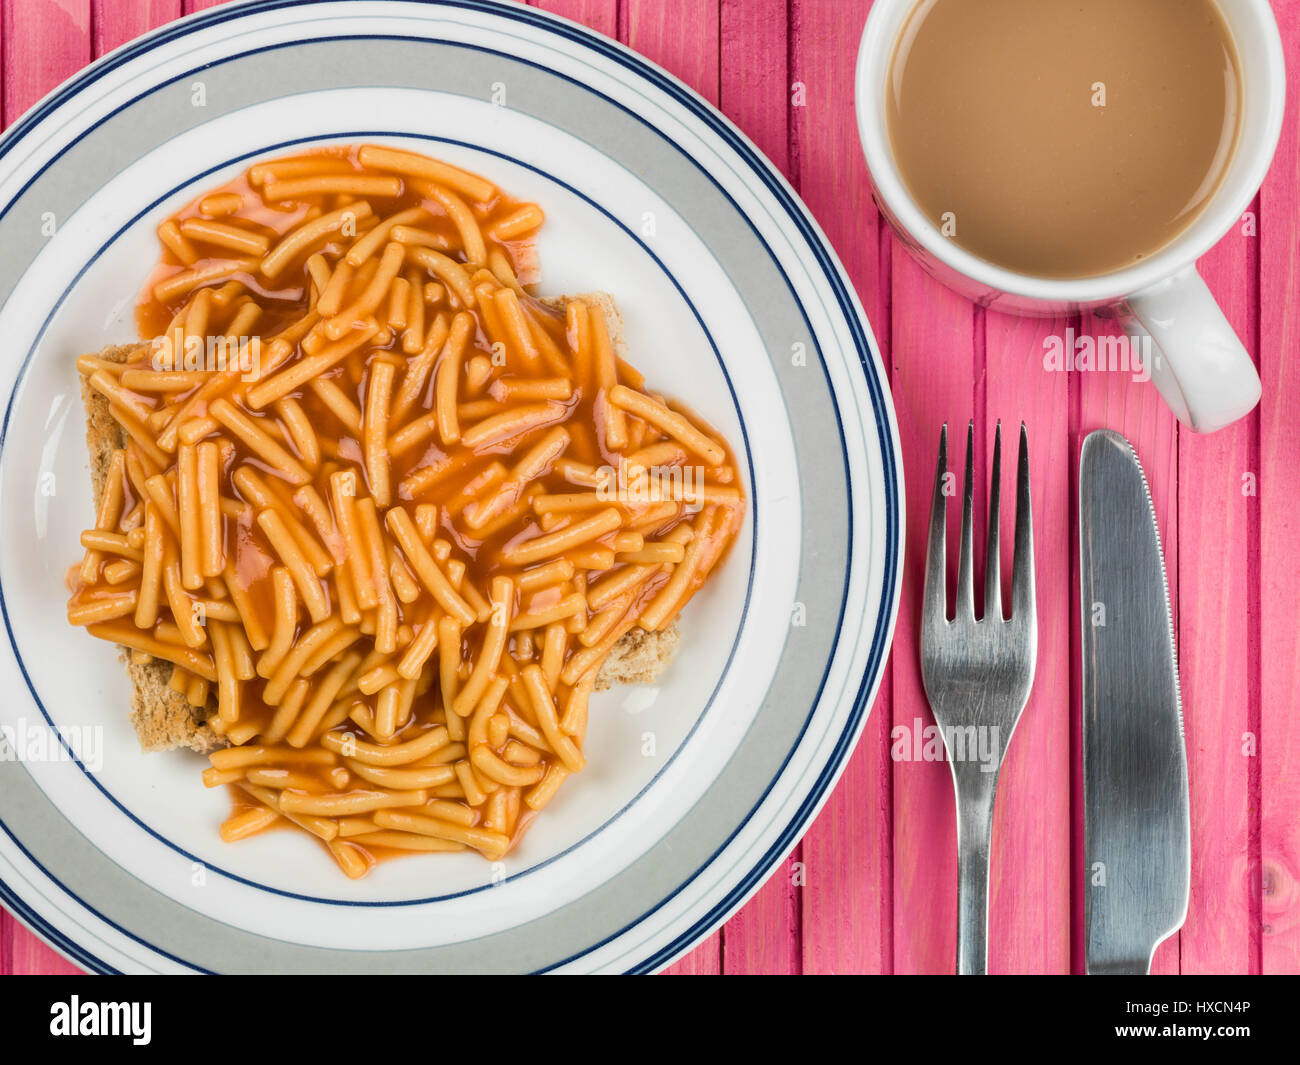 Spaghetti on Toasted Bread Served on a Plate With a Mug of Tea or Coffee - Stock Image